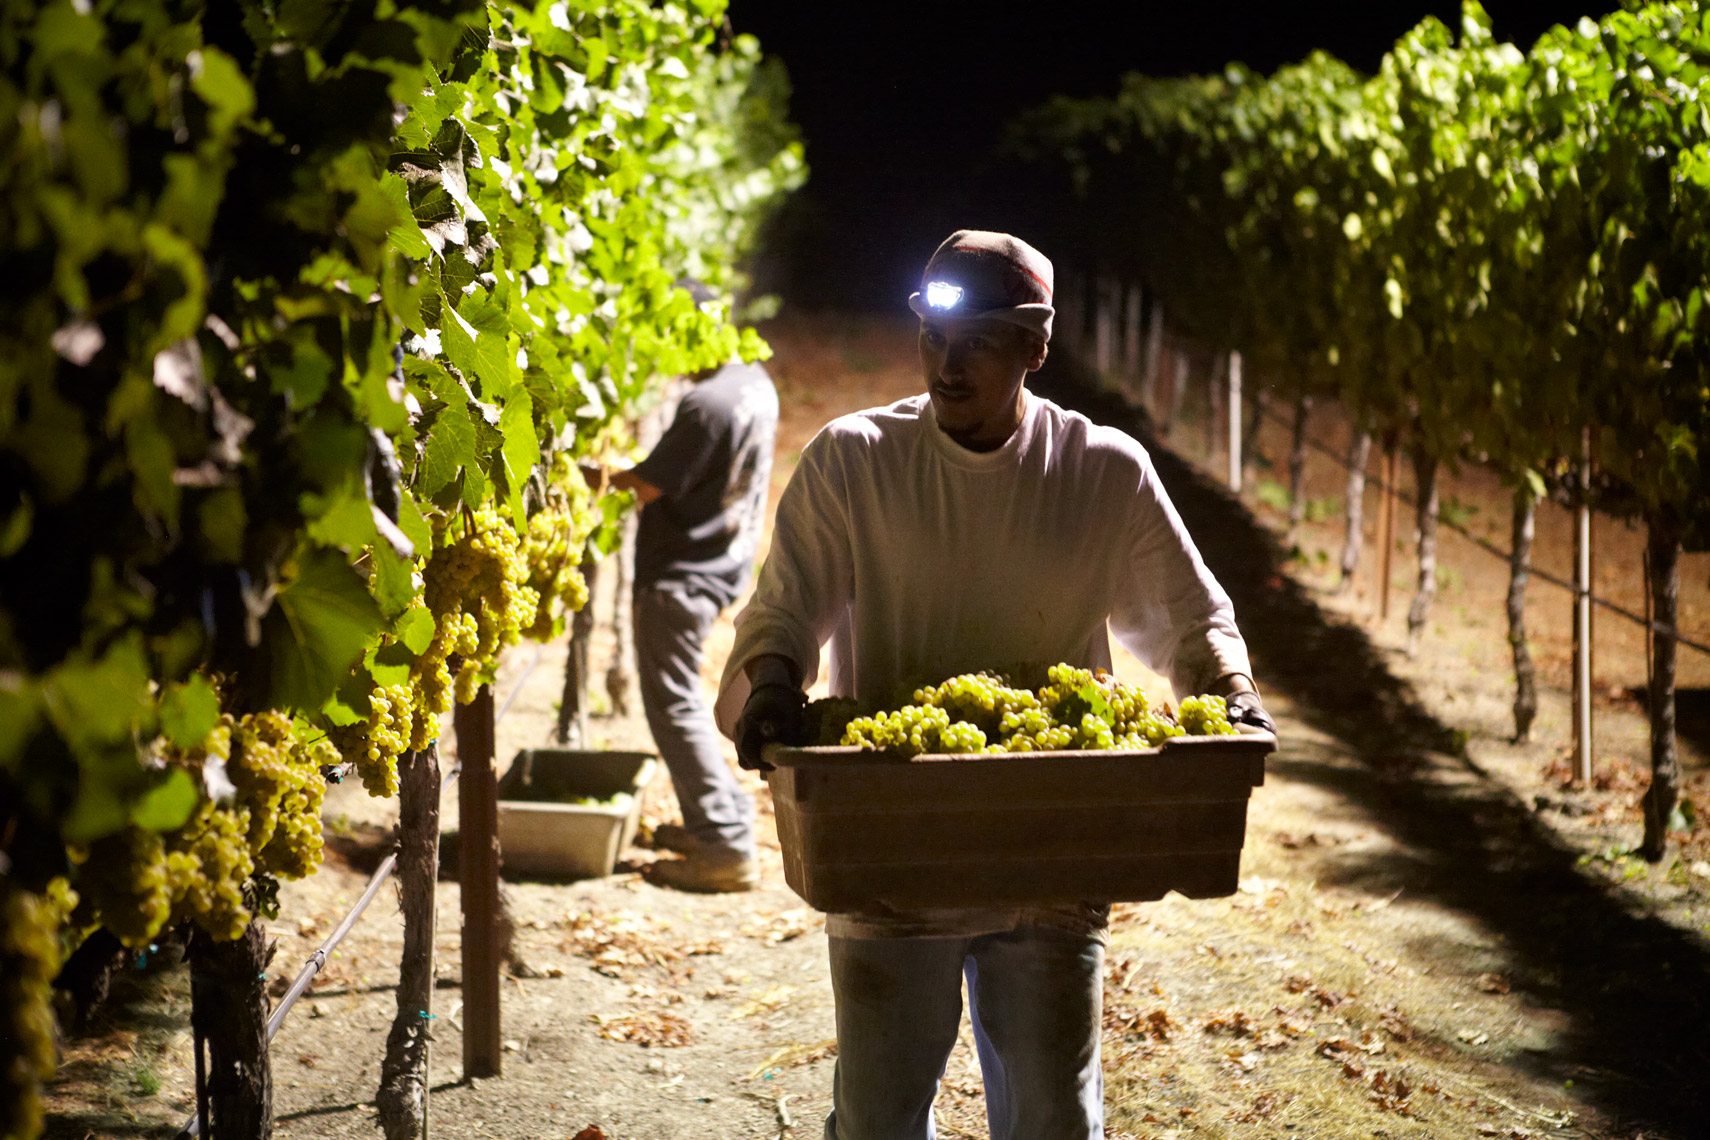 AlanCampbellPhotography, chardonnay night harvest